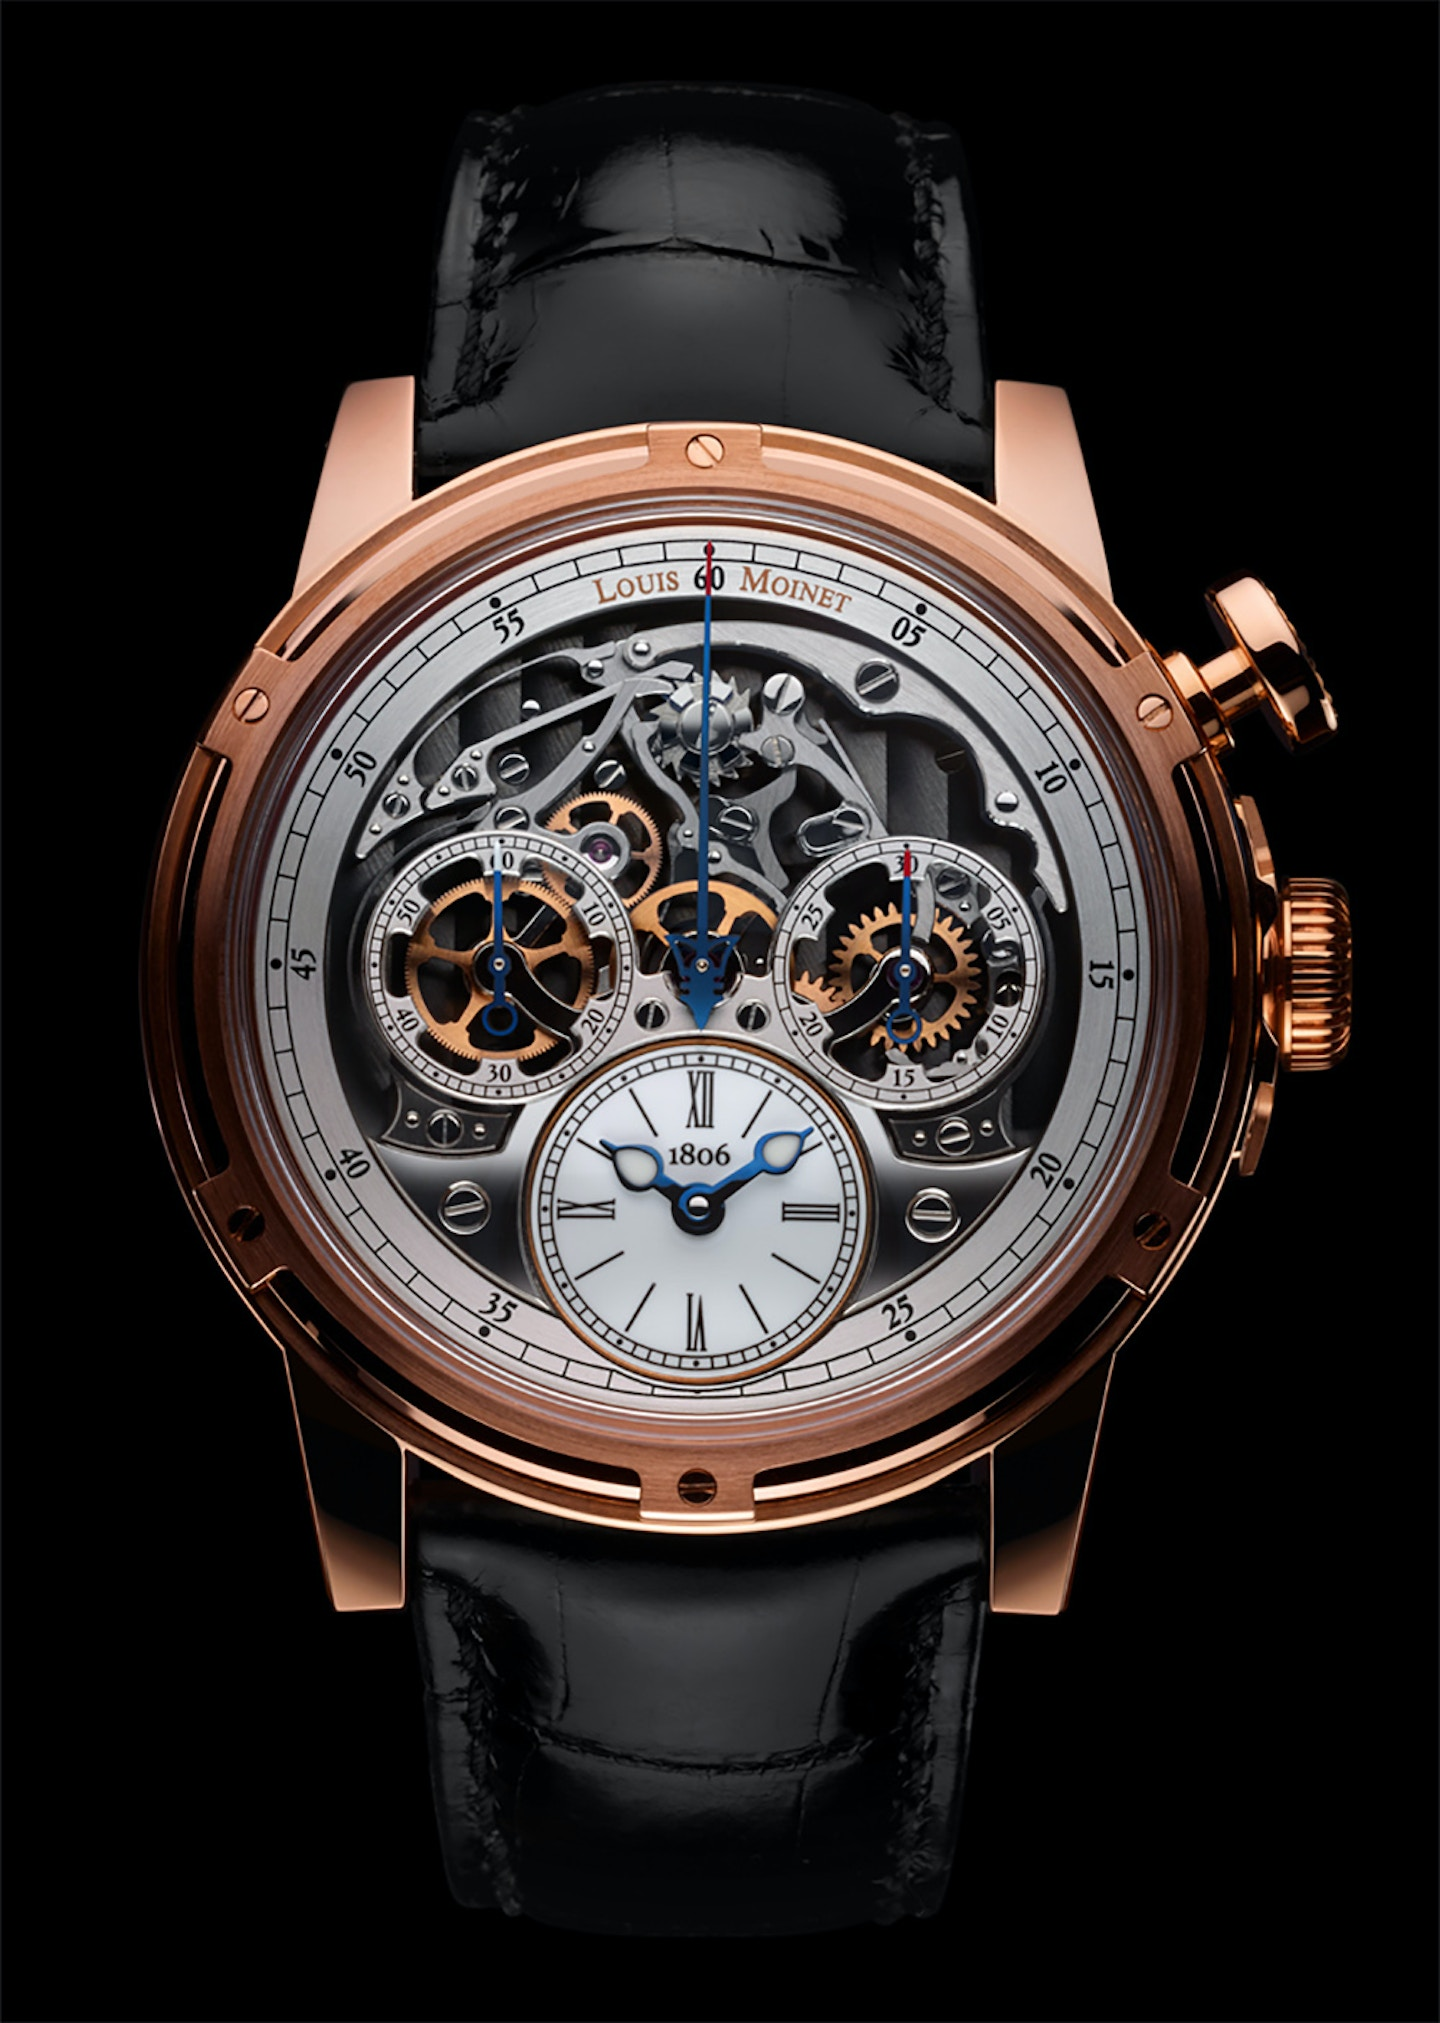 Louis Moinet Memoris celebrates 200 years of the chronograph